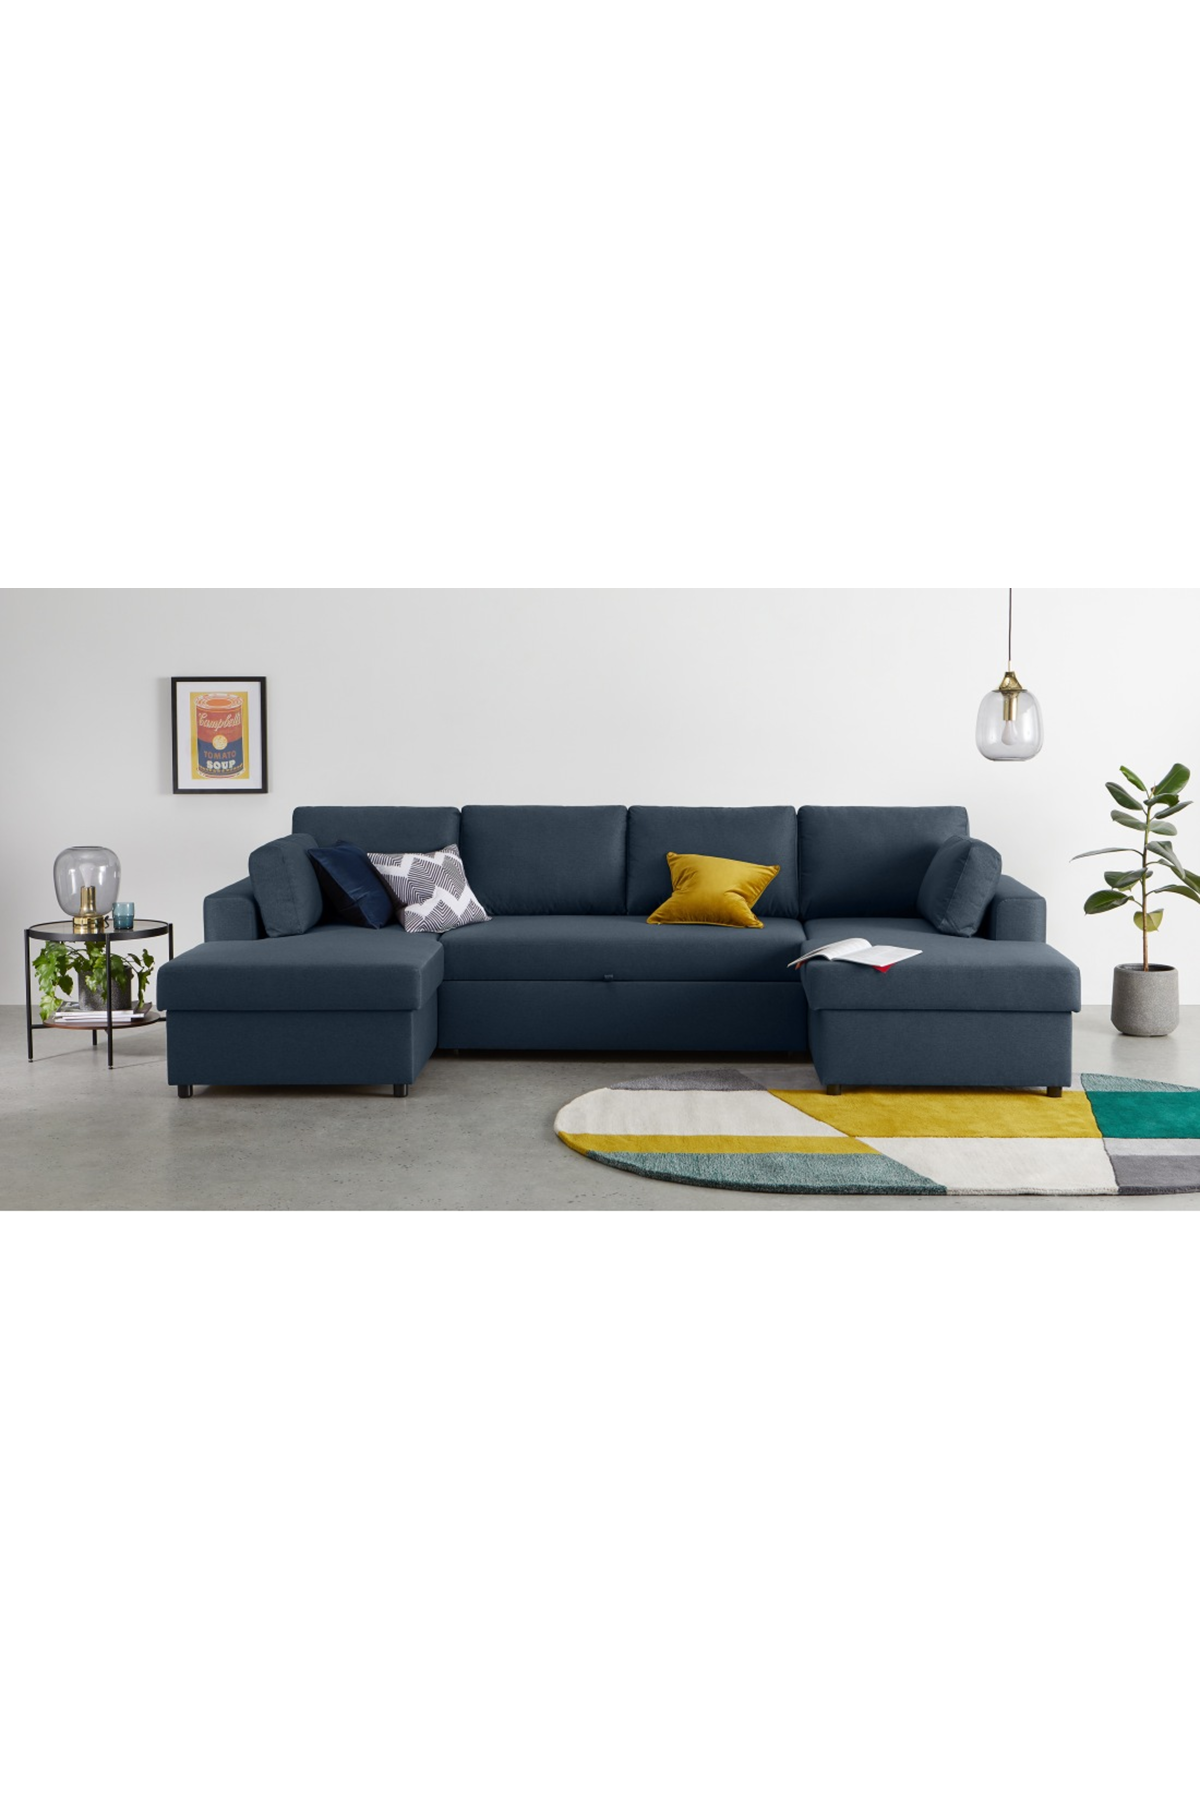 Aidian Large Corner Sofa Bed With Storage Regal Blue Corner Sofa Bed With Storage Sofa Bed With Storage Corner Sofa